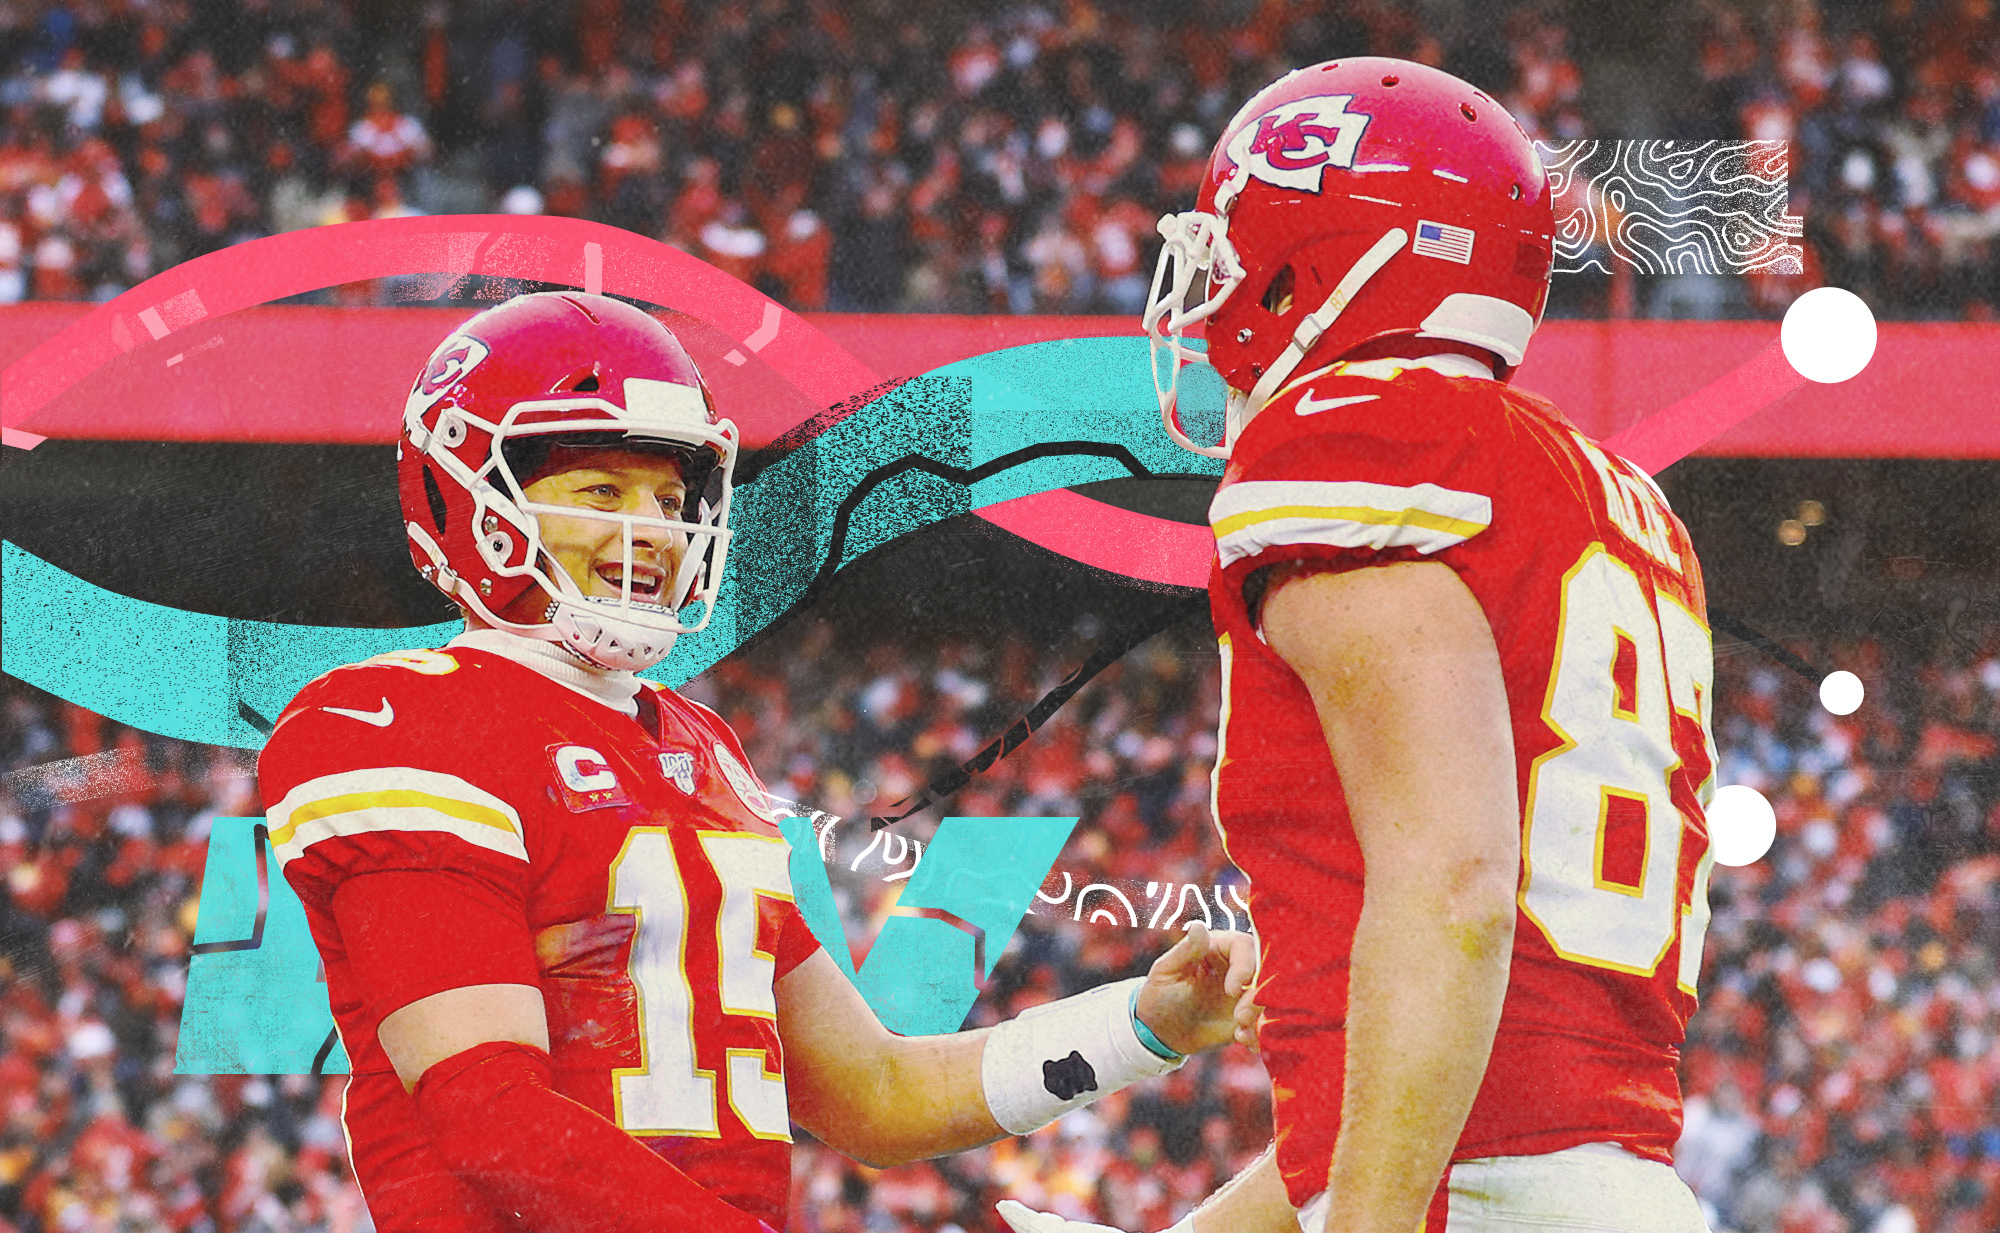 Chiefs QB Patrick Mahomes smiles at tight end Travis Kelce, superimposed on background with pink, teal, white lines